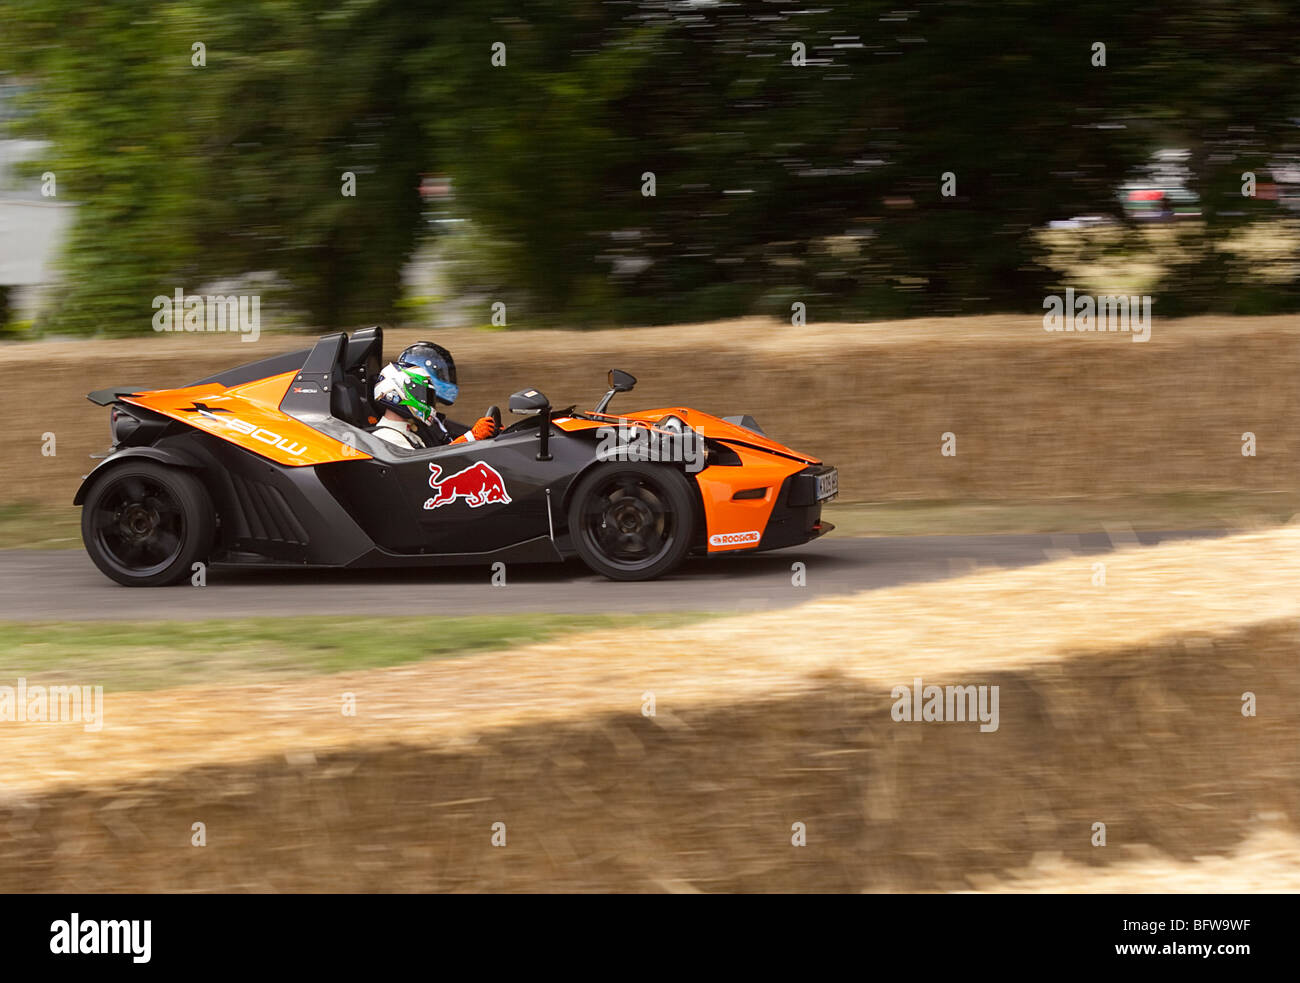 KTM X-Bow - Stock Image